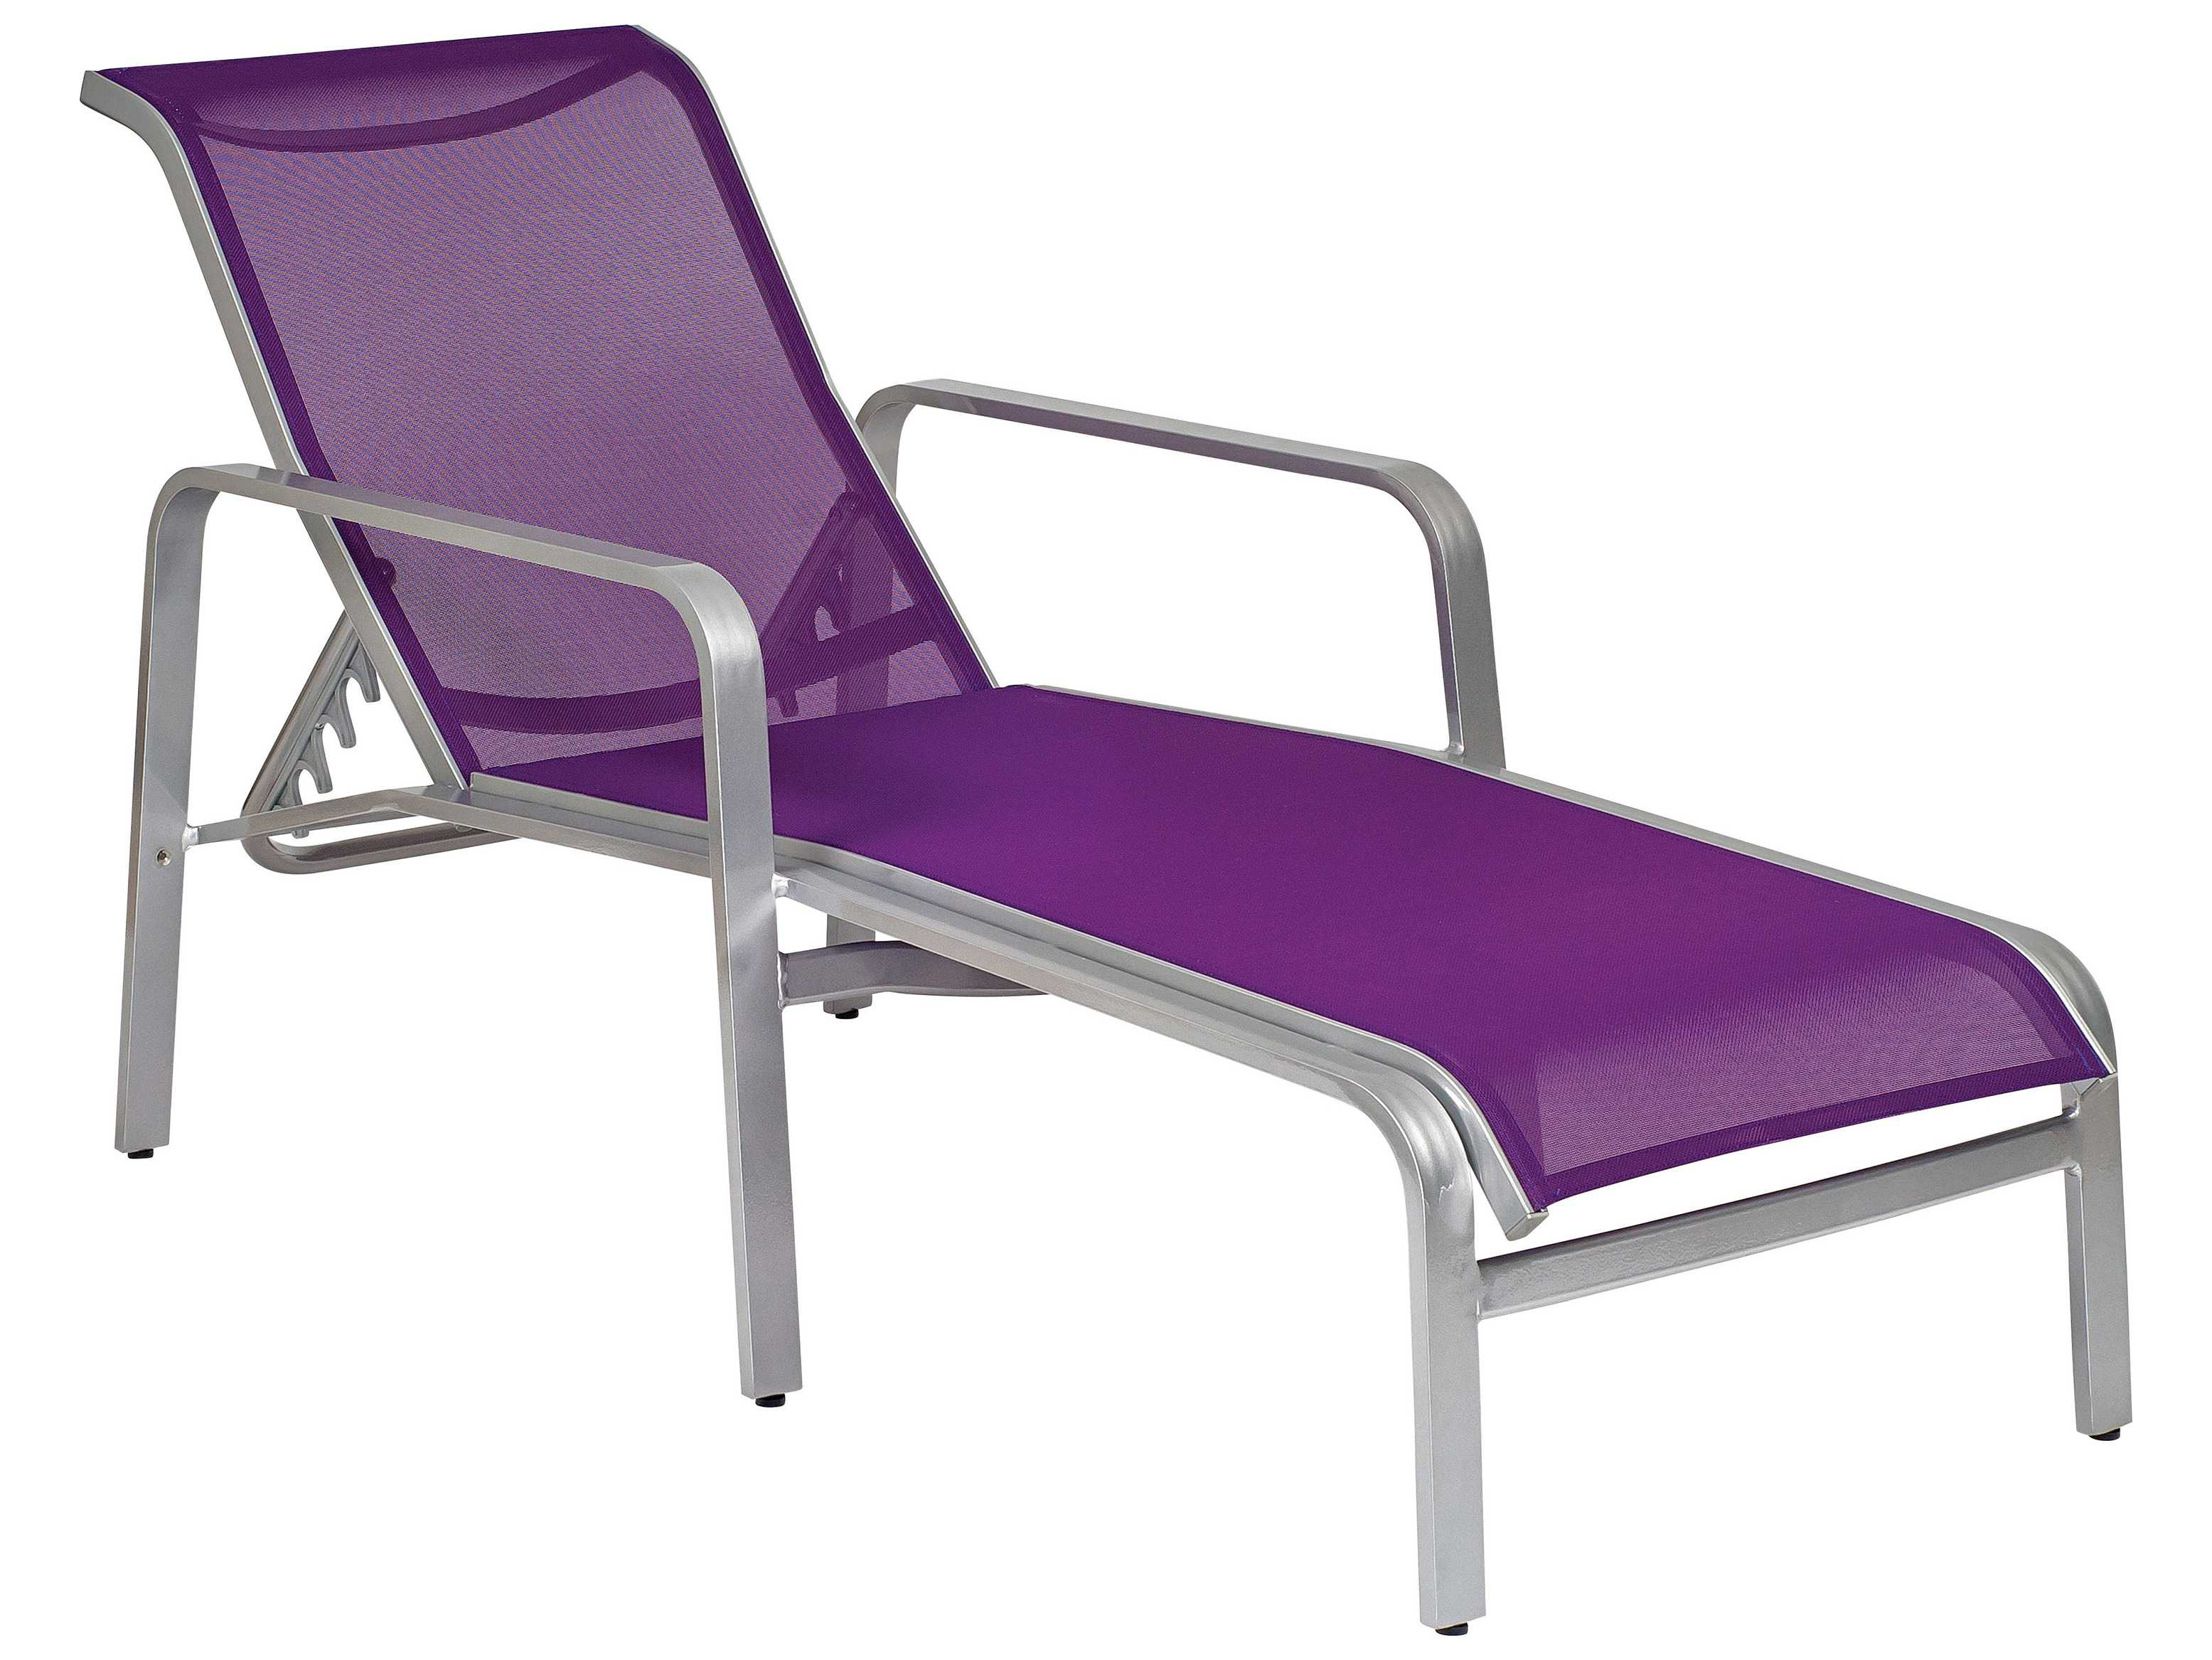 Sling Chaise Lounge Chair Woodard Landings Sling Aluminum Stackable Chaise Lounge